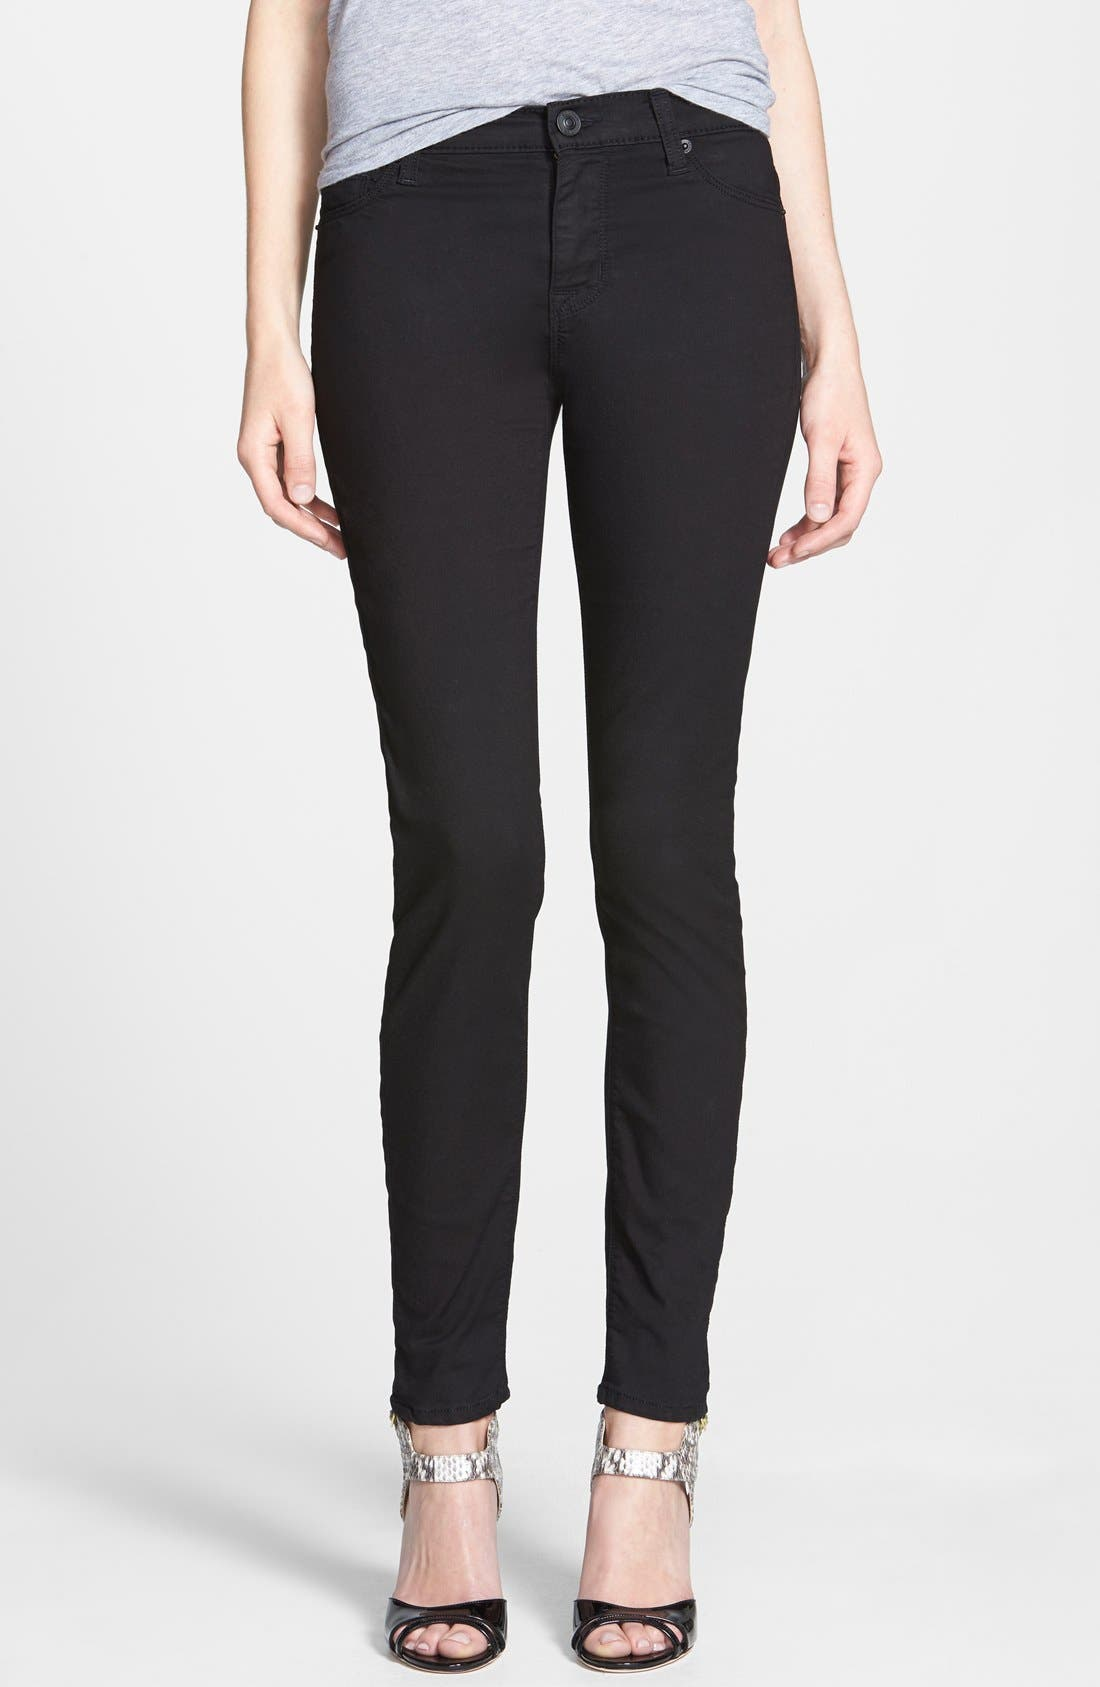 Alternate Image 1 Selected - Hudson Jeans 'Nico' Super Skinny Jeans (Melancholy)